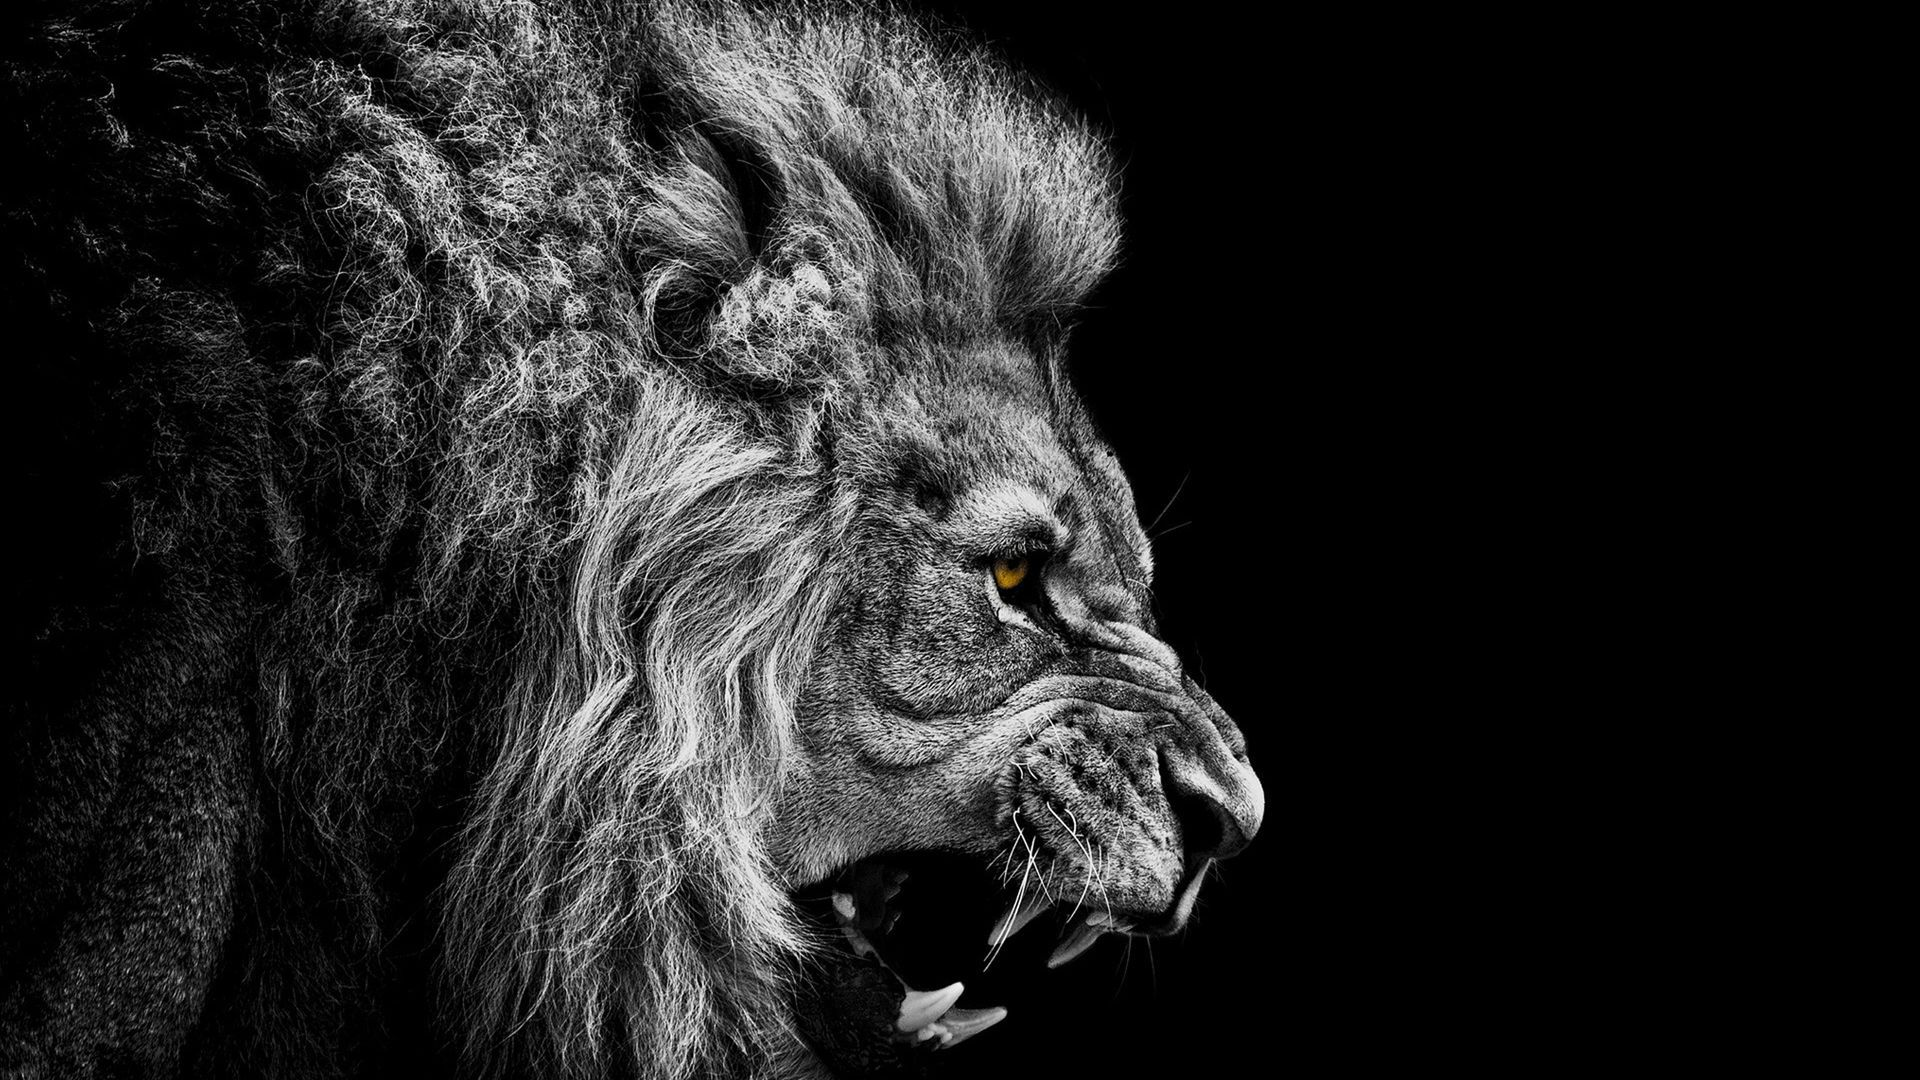 Black Lion Wallpapers Top Free Black Lion Backgrounds Wallpaperaccess